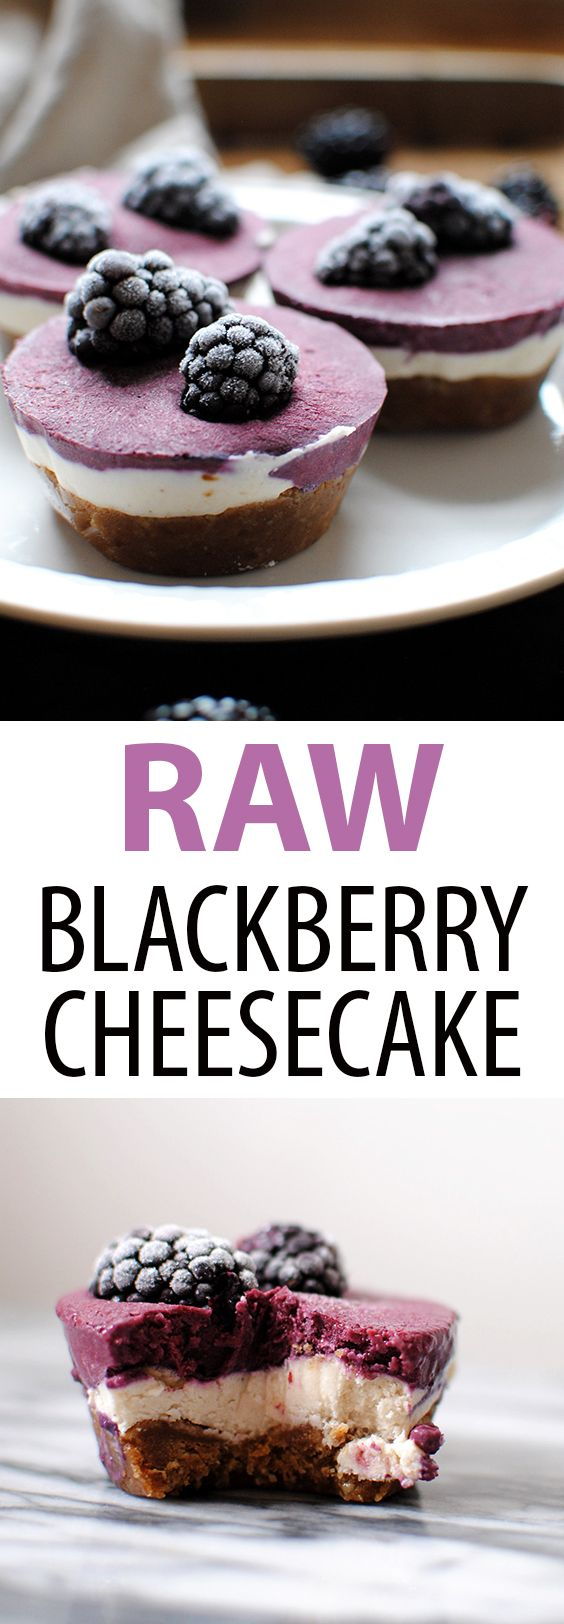 Click To Read About Fast & Healthy Diets That Works To Lose 21 Pounds in 21 Days, Raw Blackberry Cheesecakes are raw, vegan, gluten free, and delicious. Just 8 ingredients: coconut milk, shredded coconut, maple syrup, dates, walnuts, cashews, coconut oil, and blackberries // raw cheesecake // raw dessert // blackberry dessert // healthy dessert // gluten free dessert , #weightloss, #fatloss, #healthyrecipe, #dietplan